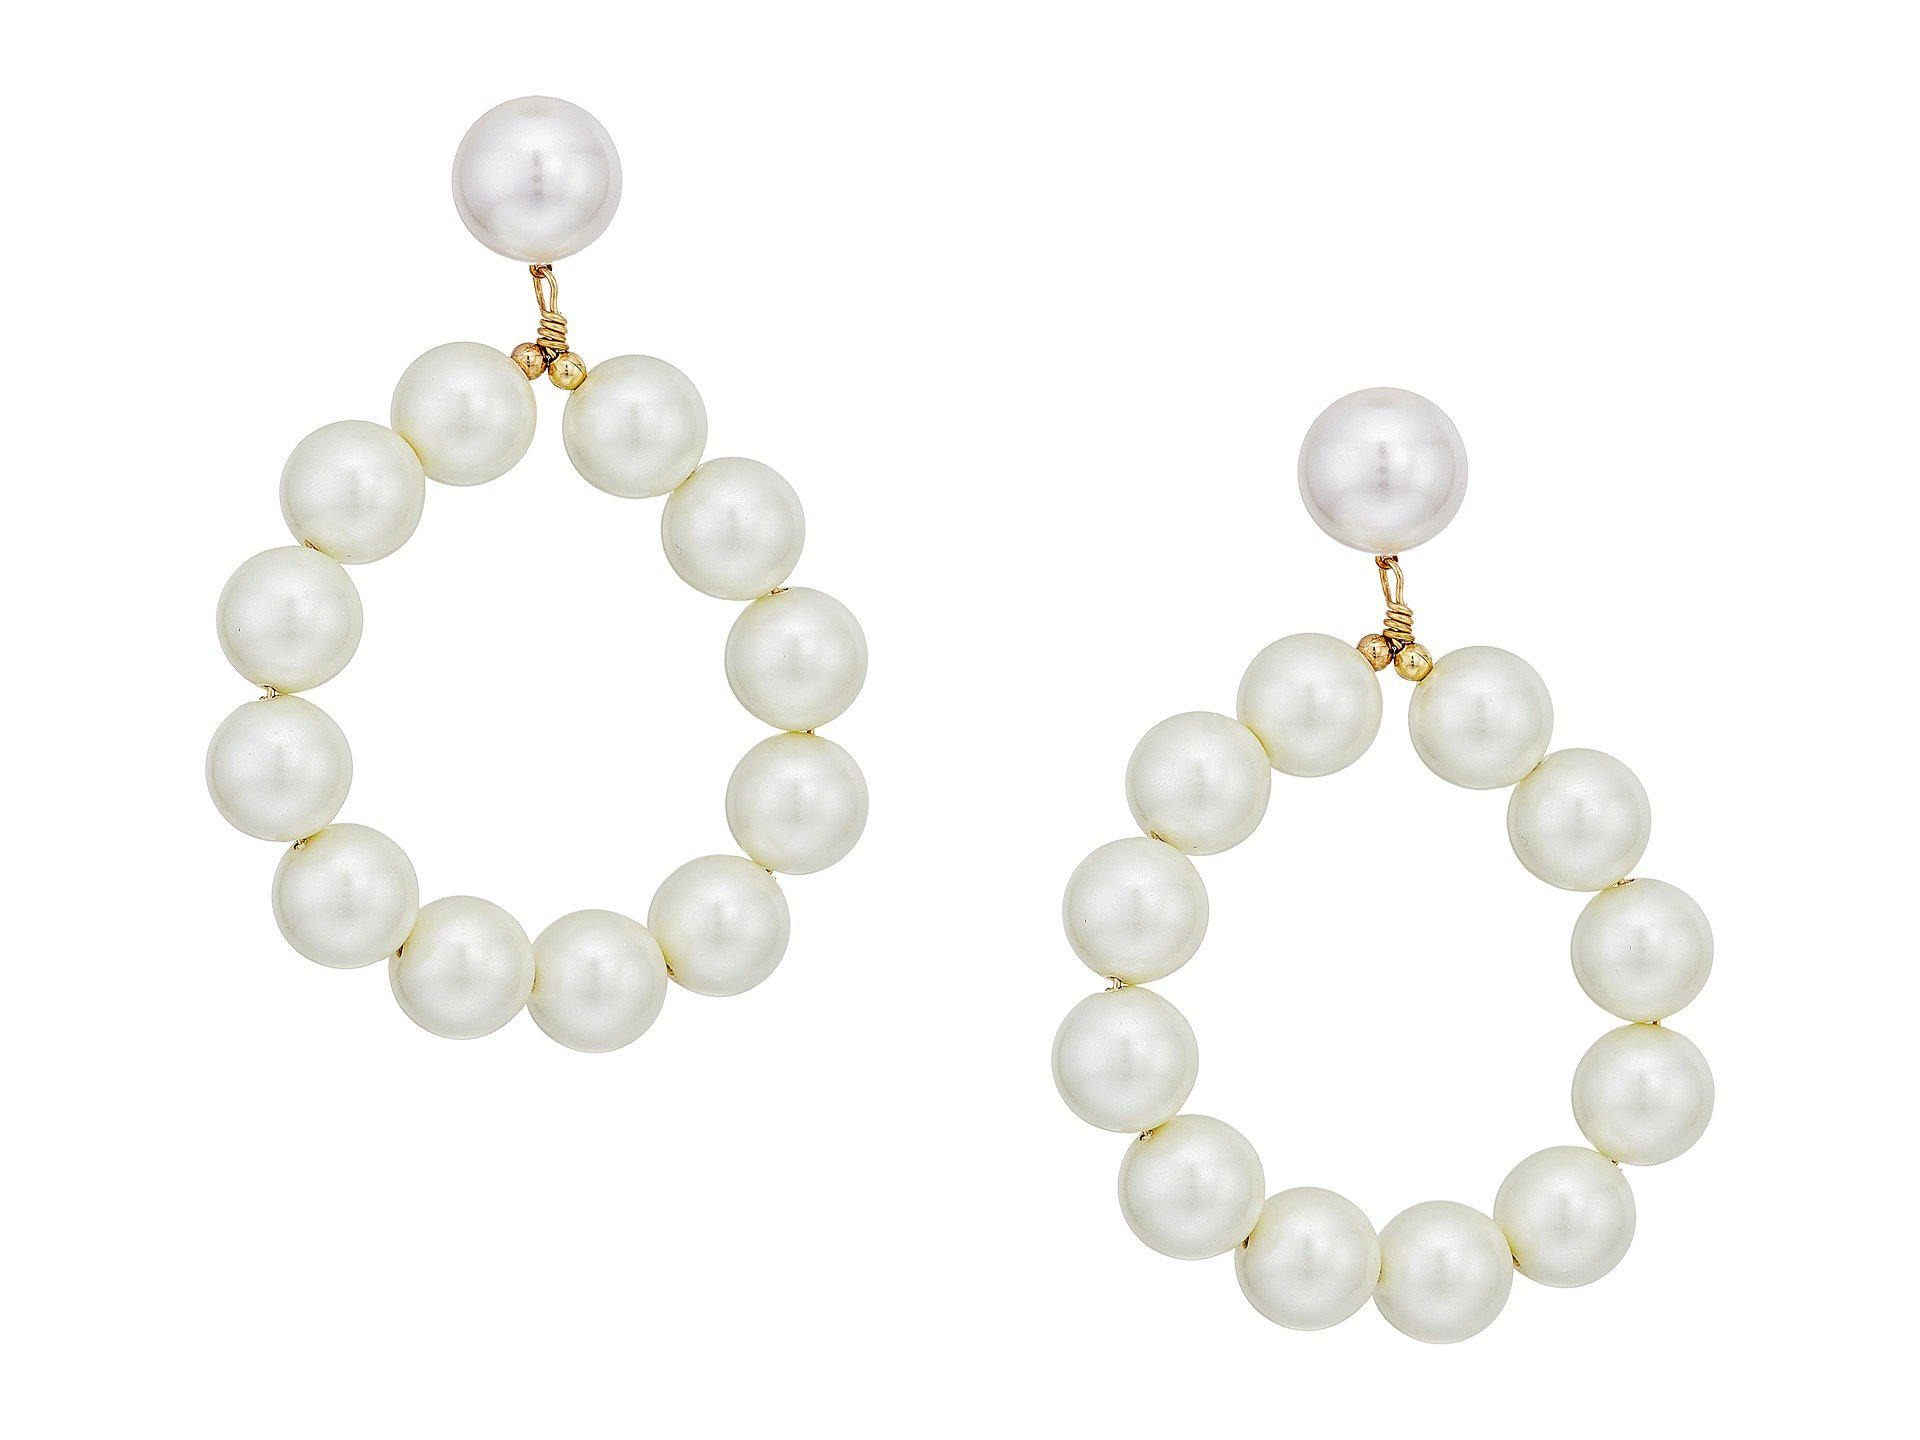 11ab92115 Kenneth Jay Lane Gold W/ White Pearl Balls Hoop Pierced Earrings in ...